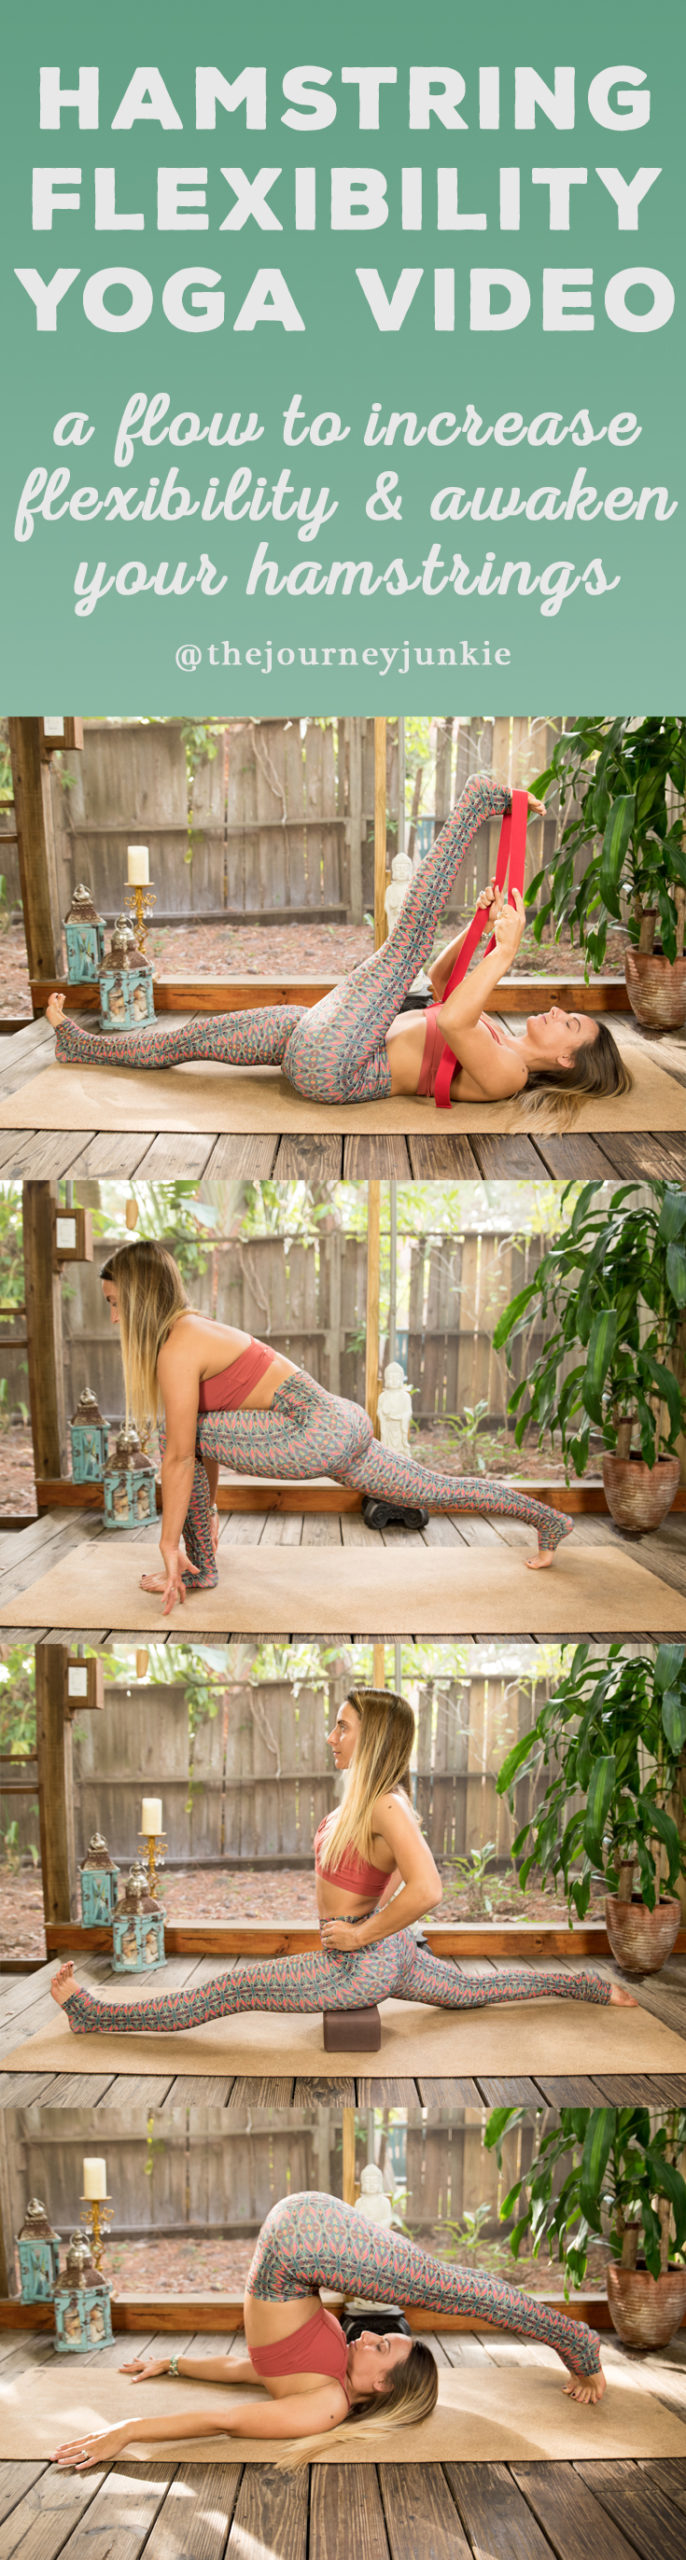 Hamstring Yoga Flow for Flexibility - 30 Minute Video - Pin now, stretch your hamstrings now!